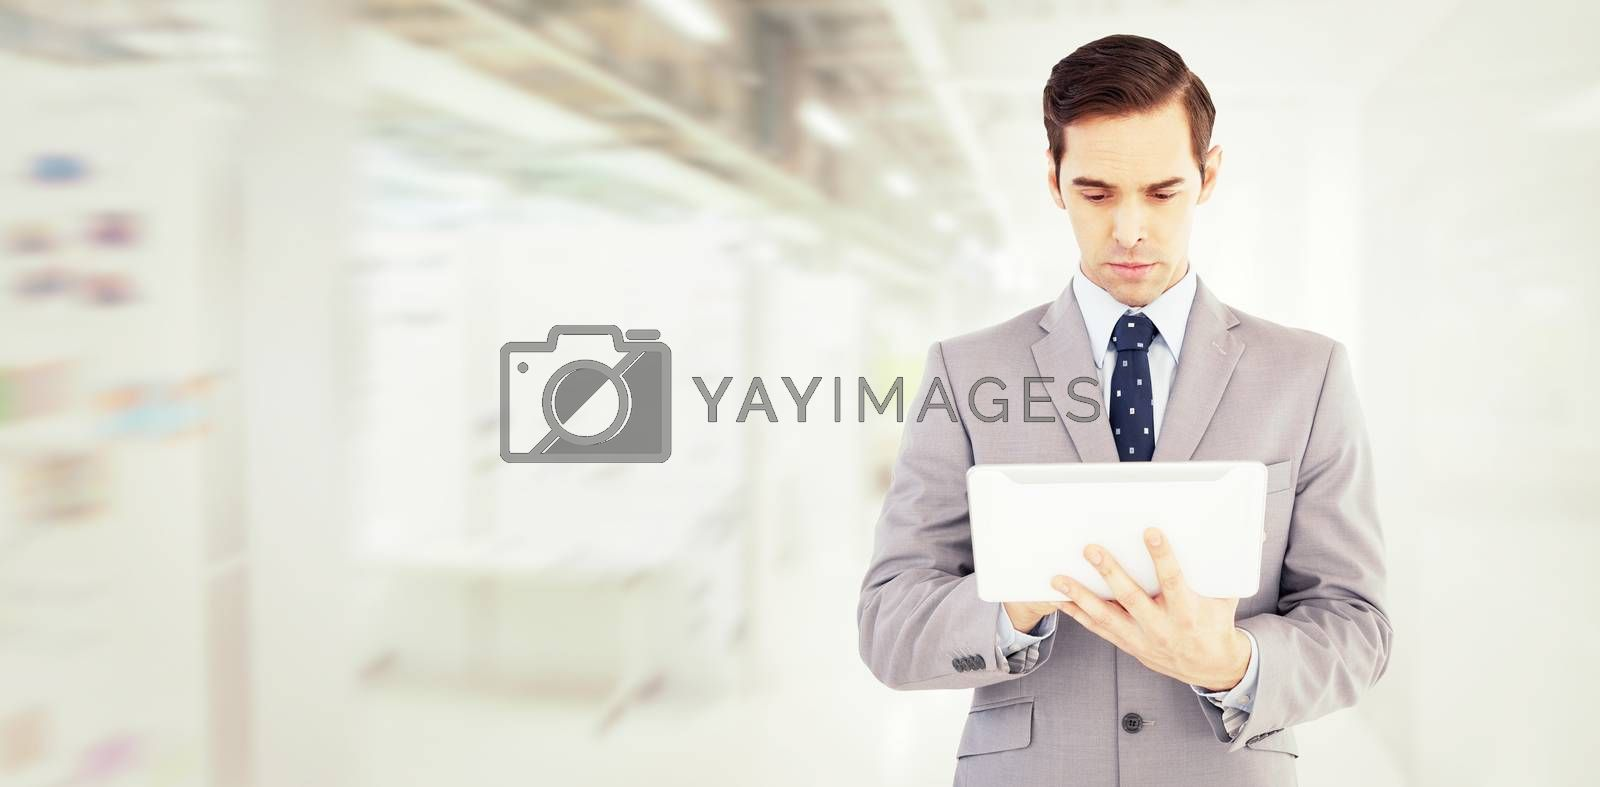 Businessman holding a tablet computer against college hallway